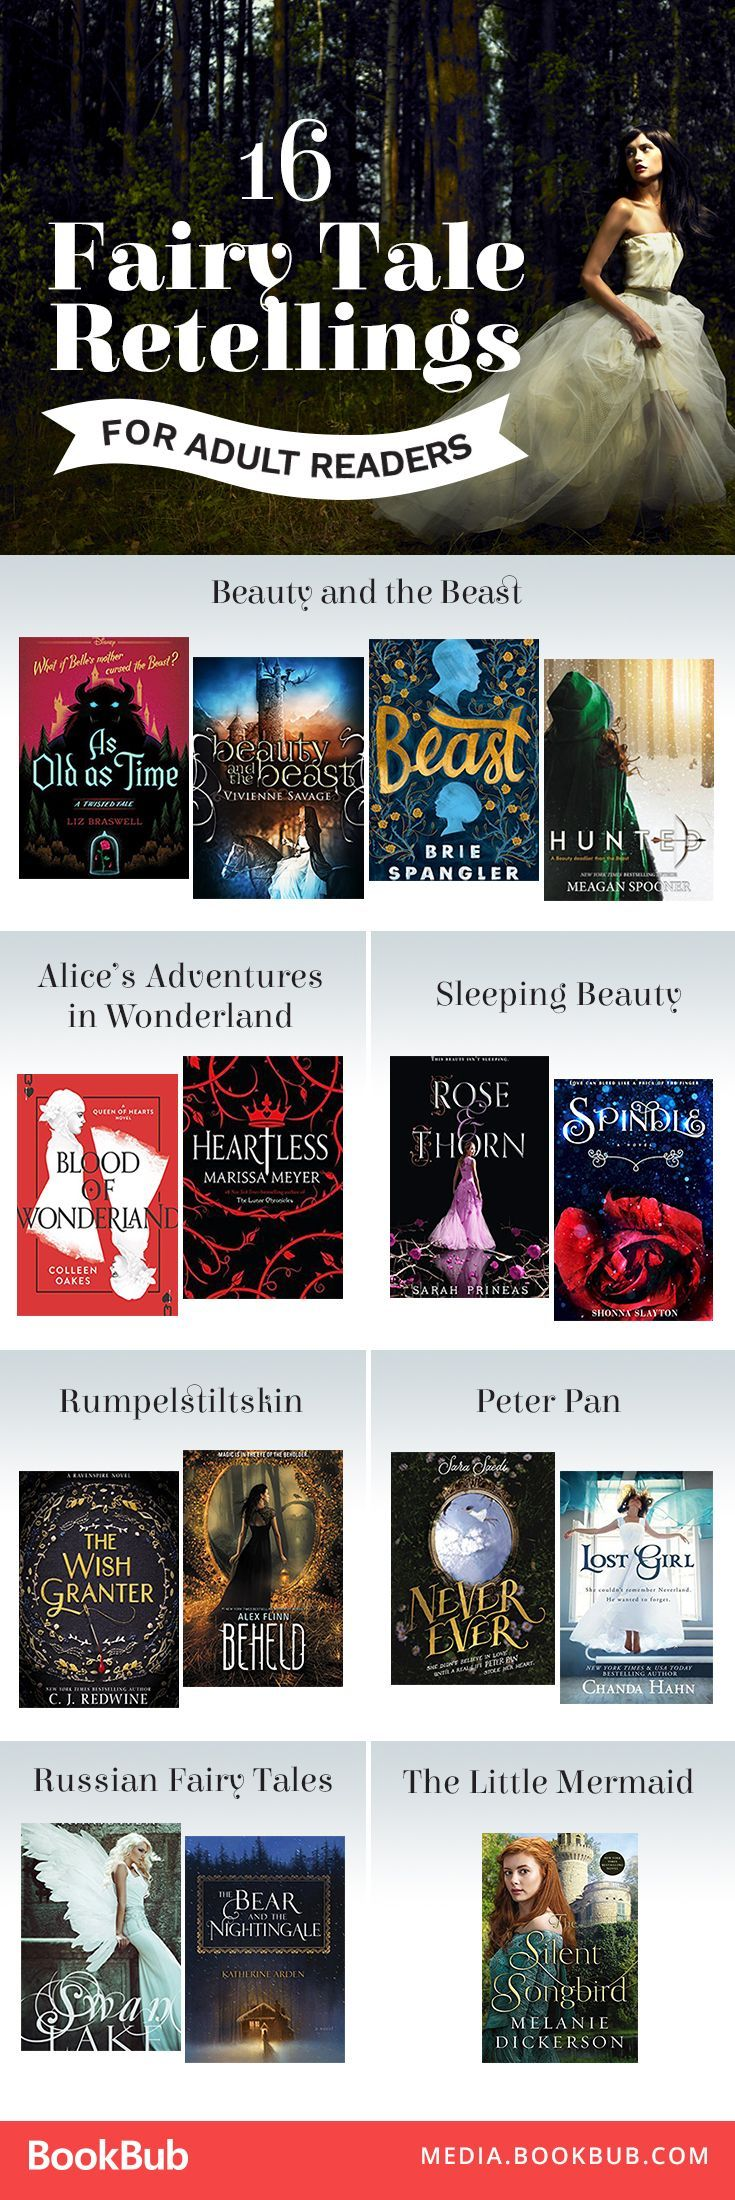 16 Fairy Tale Retellings For Adult Readers